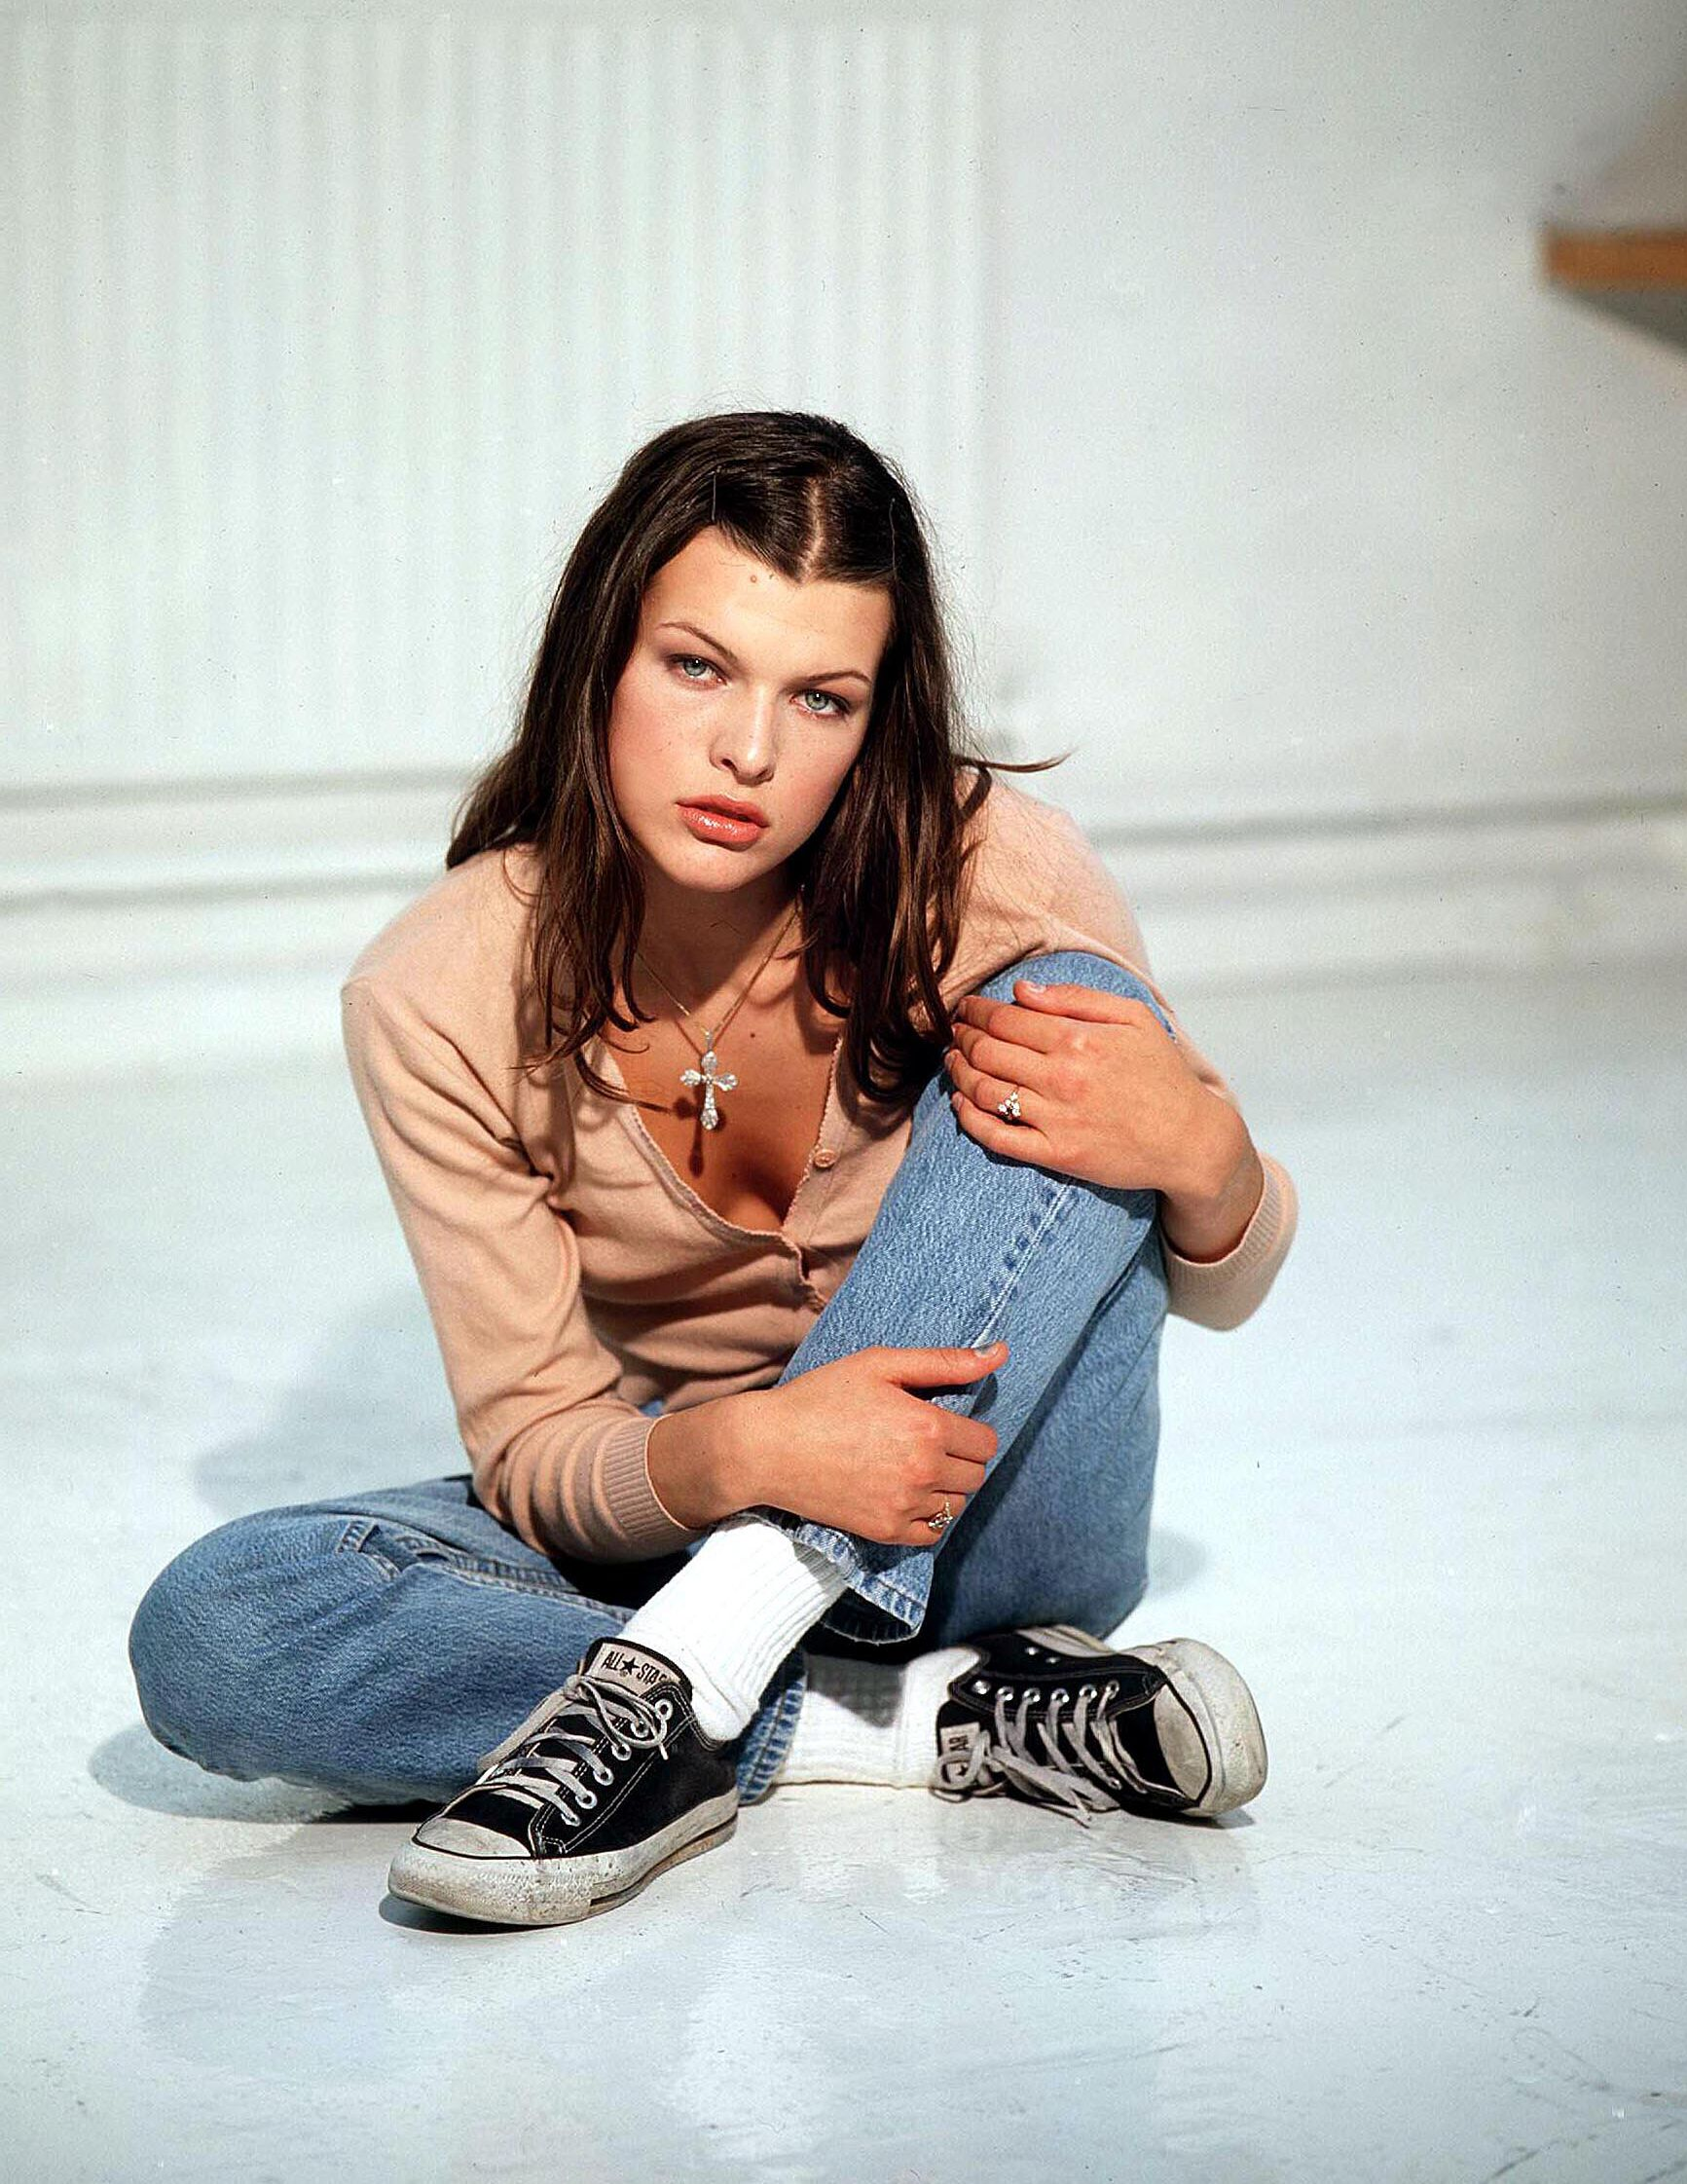 With her birthday this week, we've taken a look at Milla Jovovich's back-in-the-day style: http://asos.do/meI1OX